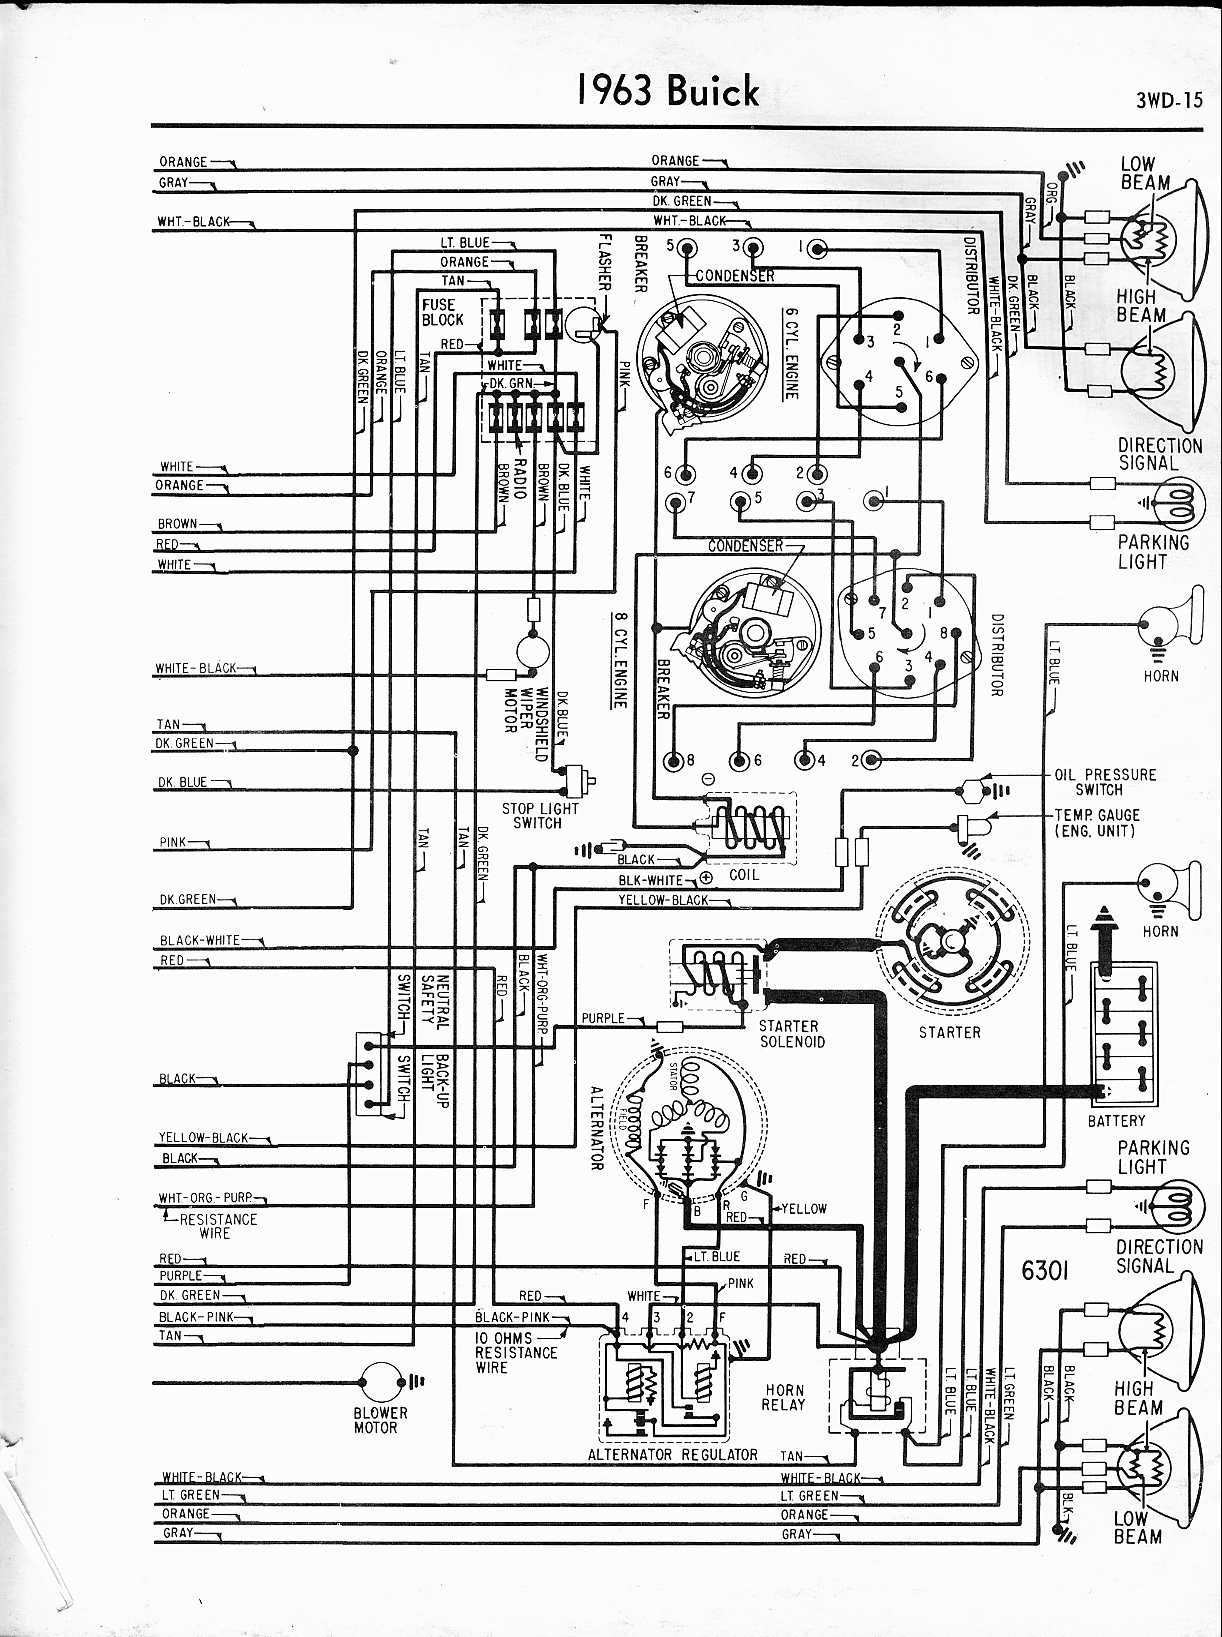 Buick Battery Wiring Diagram Schemes 1969 Ford Fuse Box Diagrams 1957 1965 Two Batteries For Rv 1963 Special Skylark Right Half